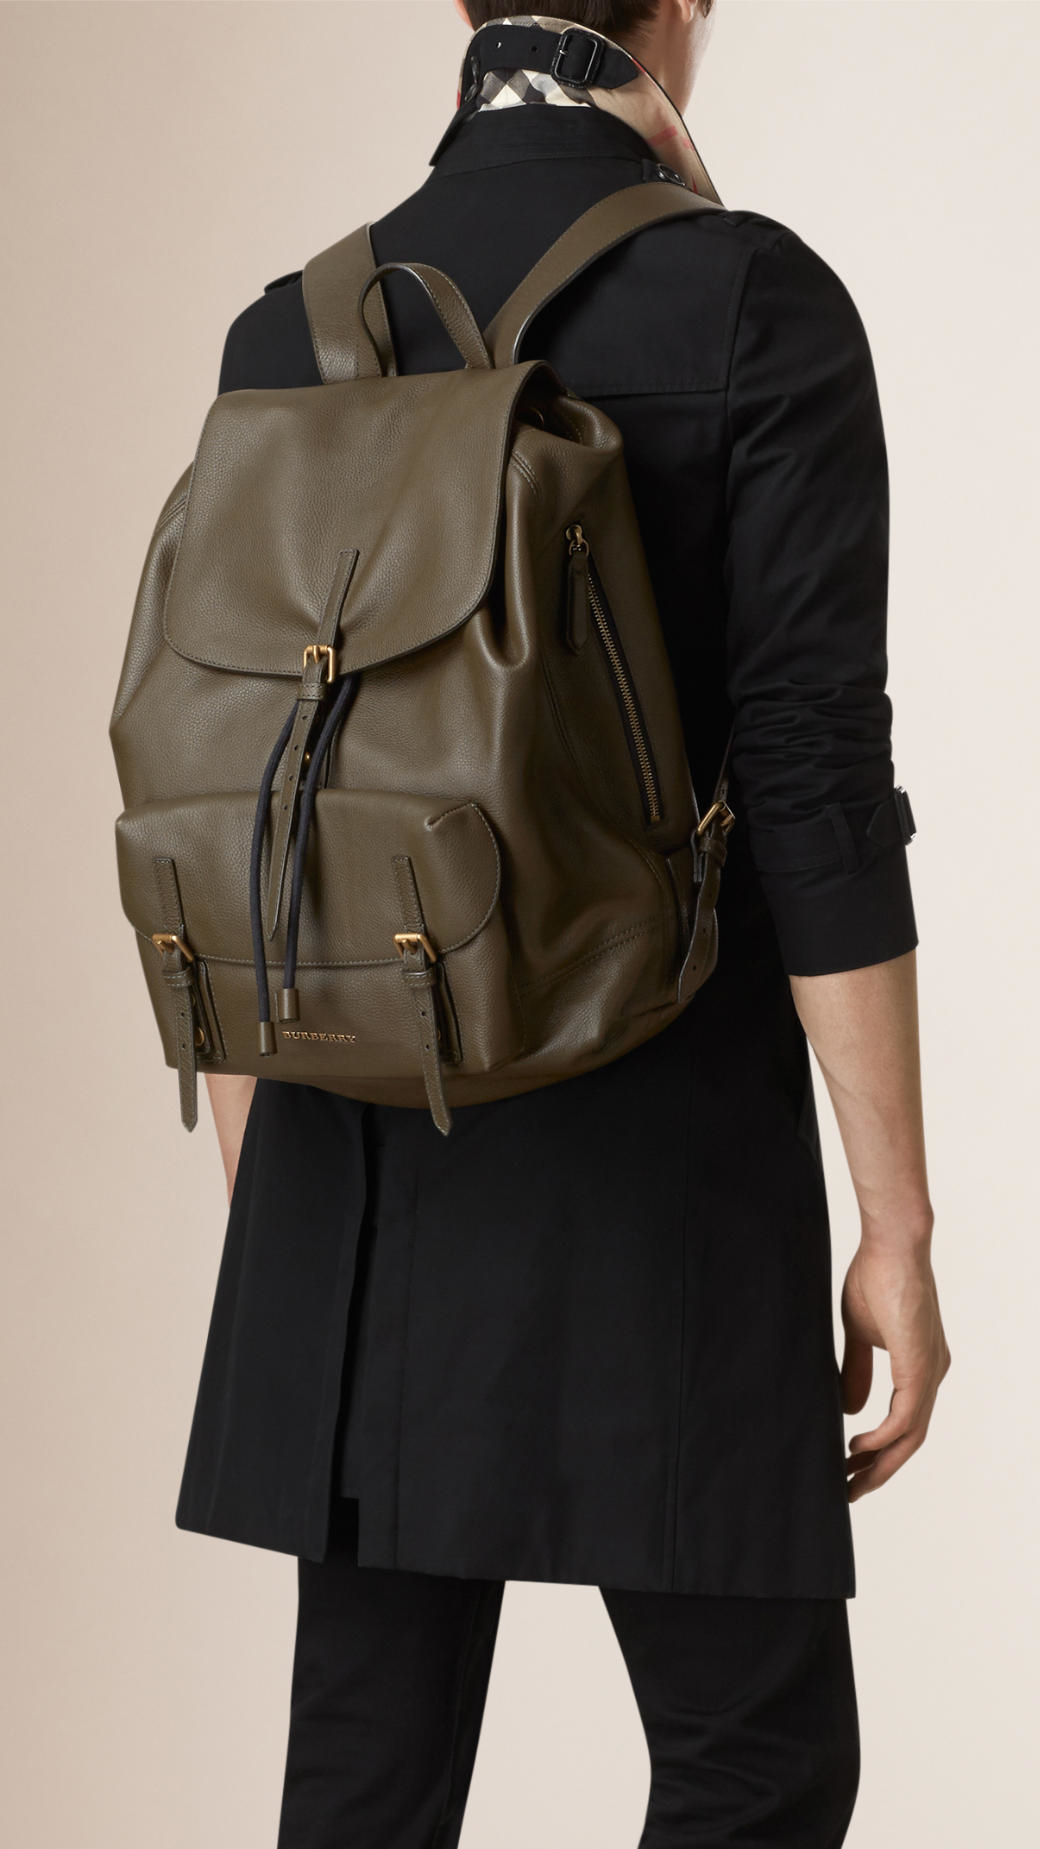 Burberry Grainy Leather Backpack in Green for Men - Lyst